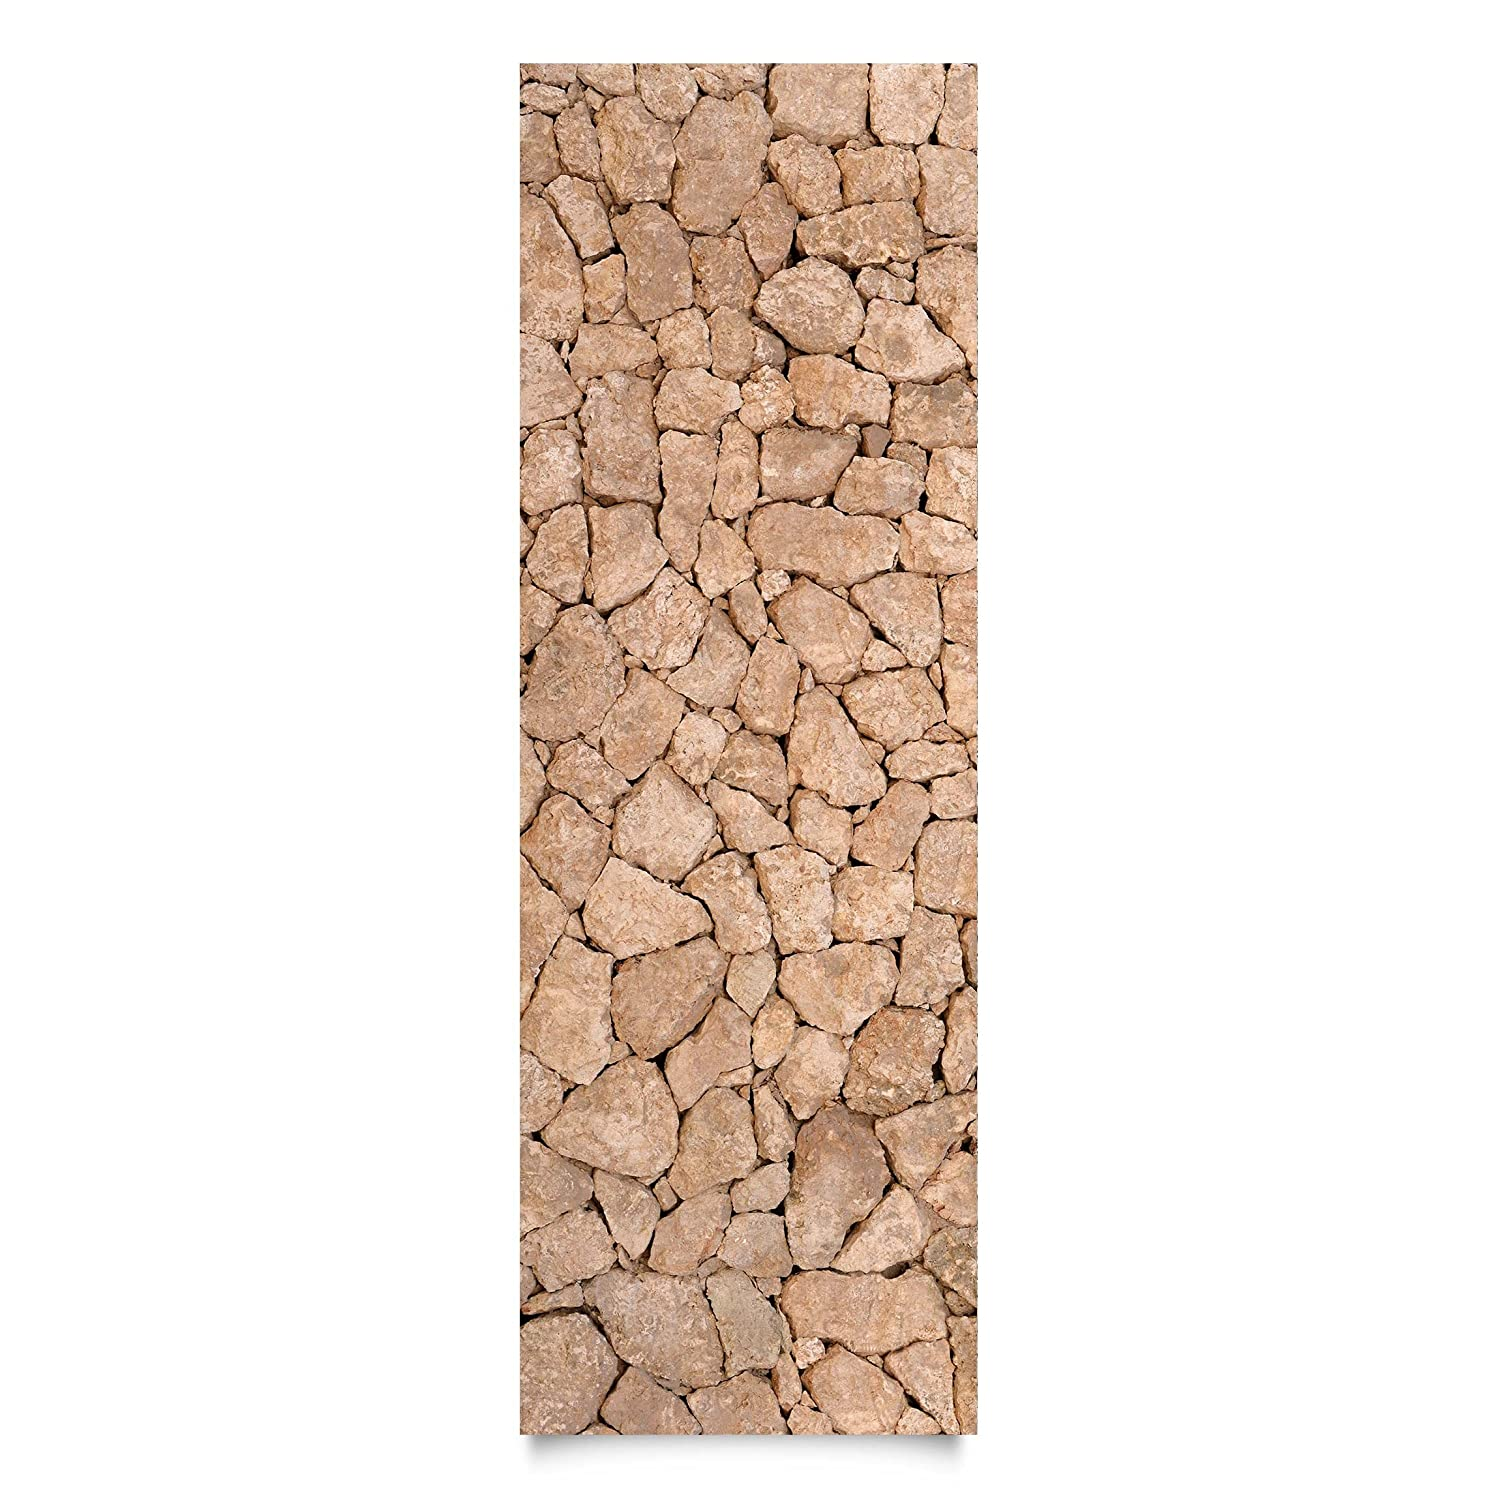 Adhesive Film - Apulia Stone Wall - Old stone wall of large stones